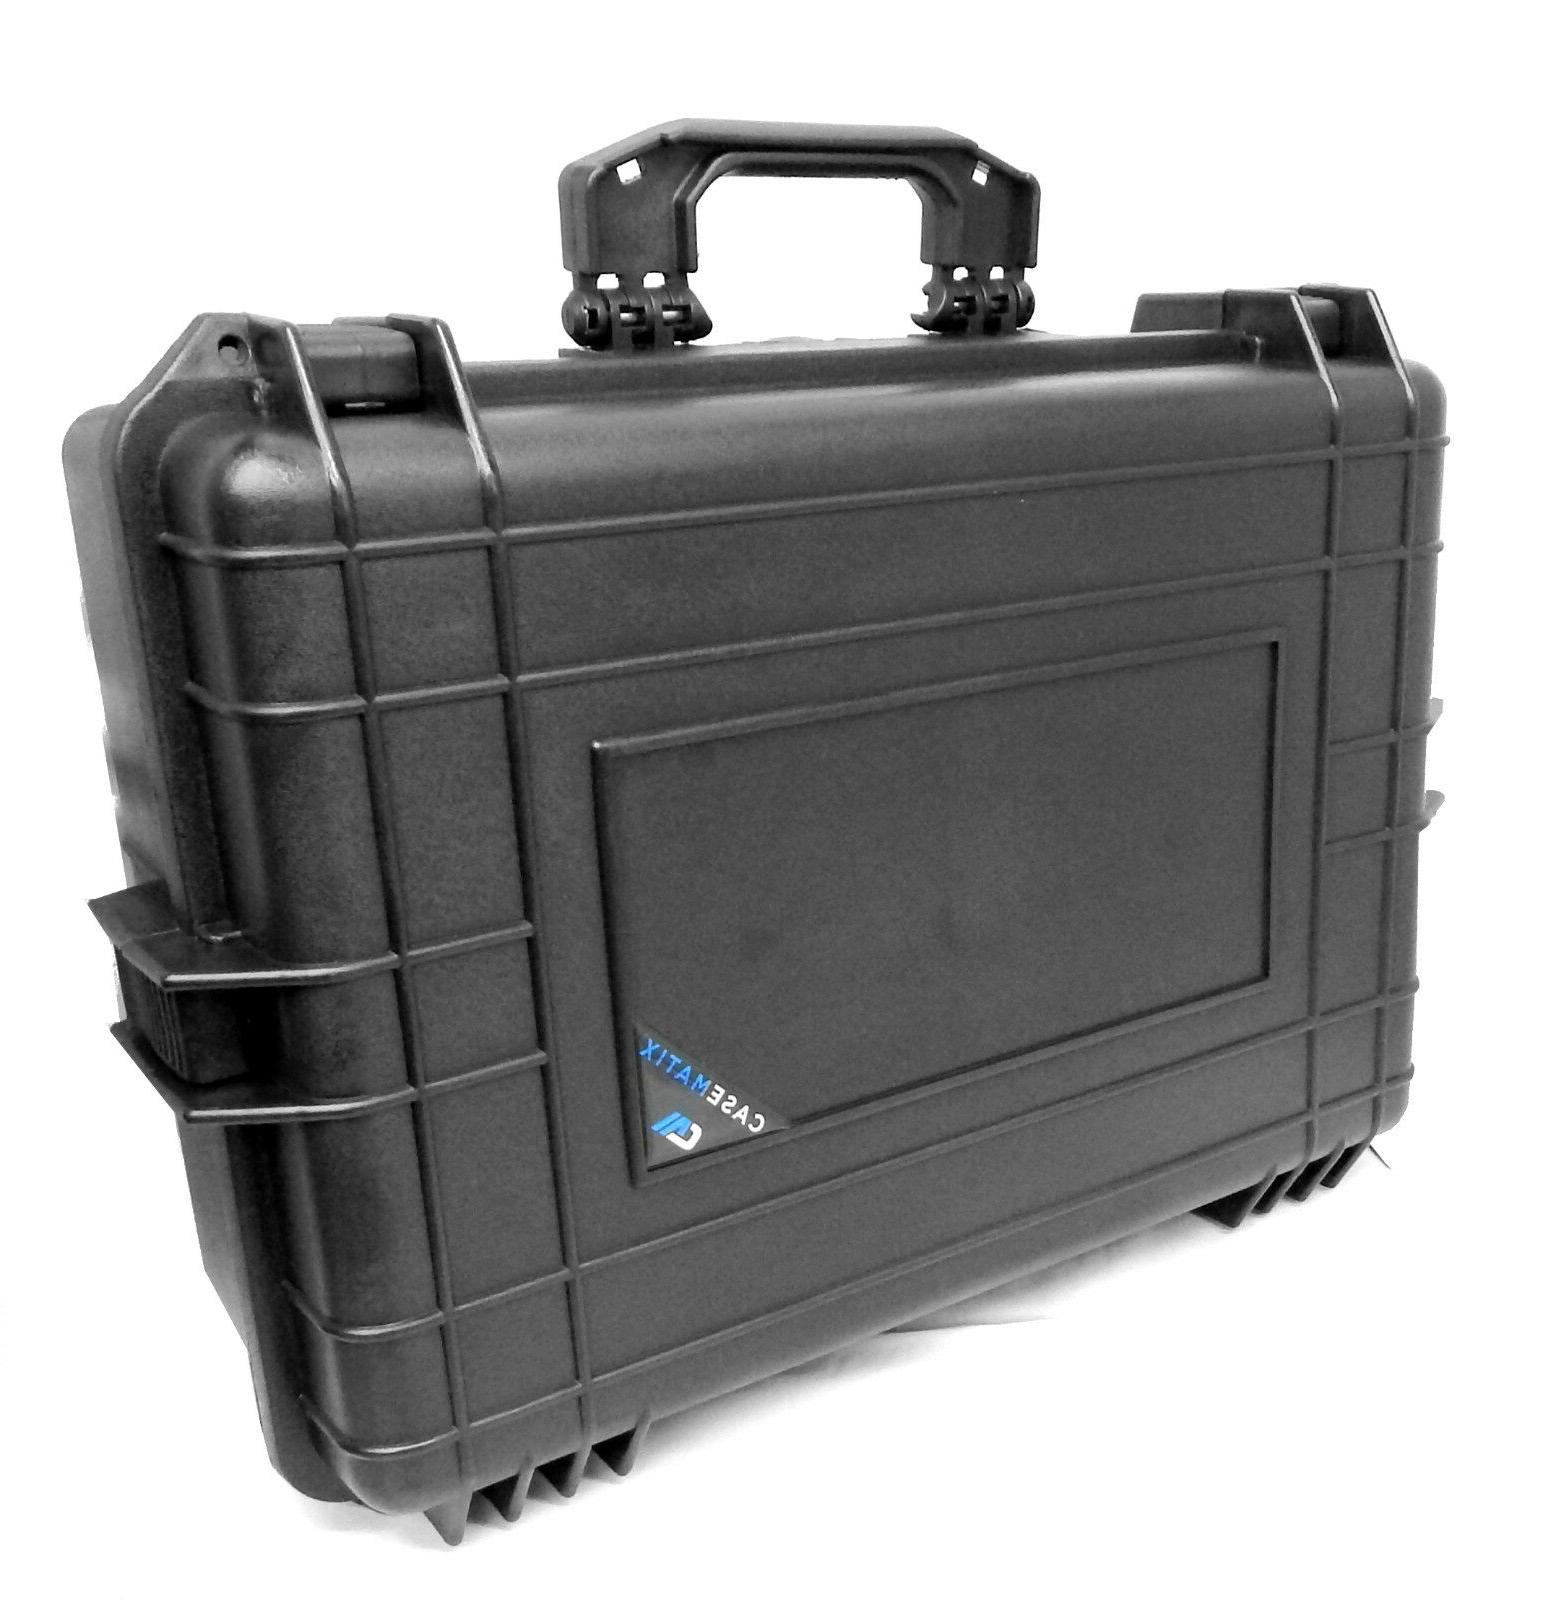 Waterproof Projector Case Fits the Epson Home Cinema 2150 -